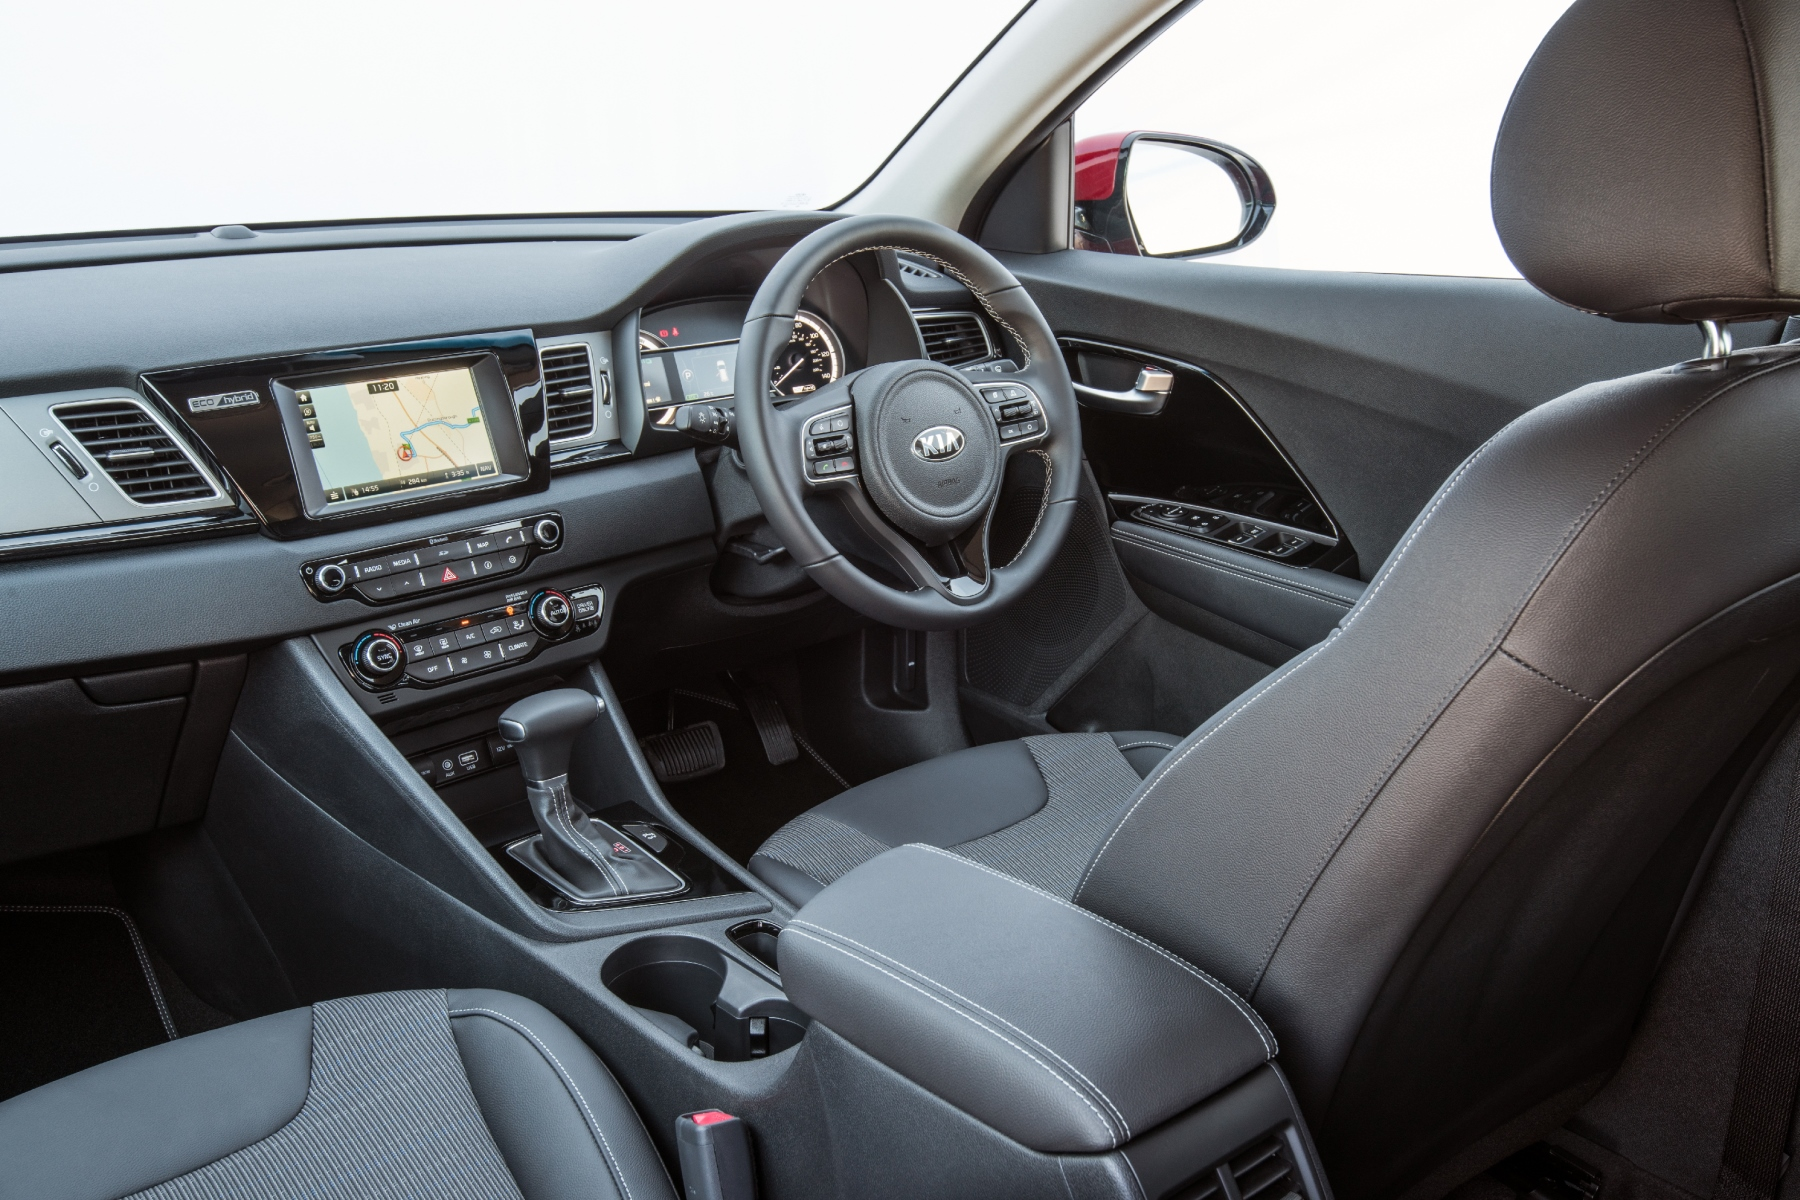 kia niro review the best dash cams a selection of the best dashboard cameras available. Black Bedroom Furniture Sets. Home Design Ideas